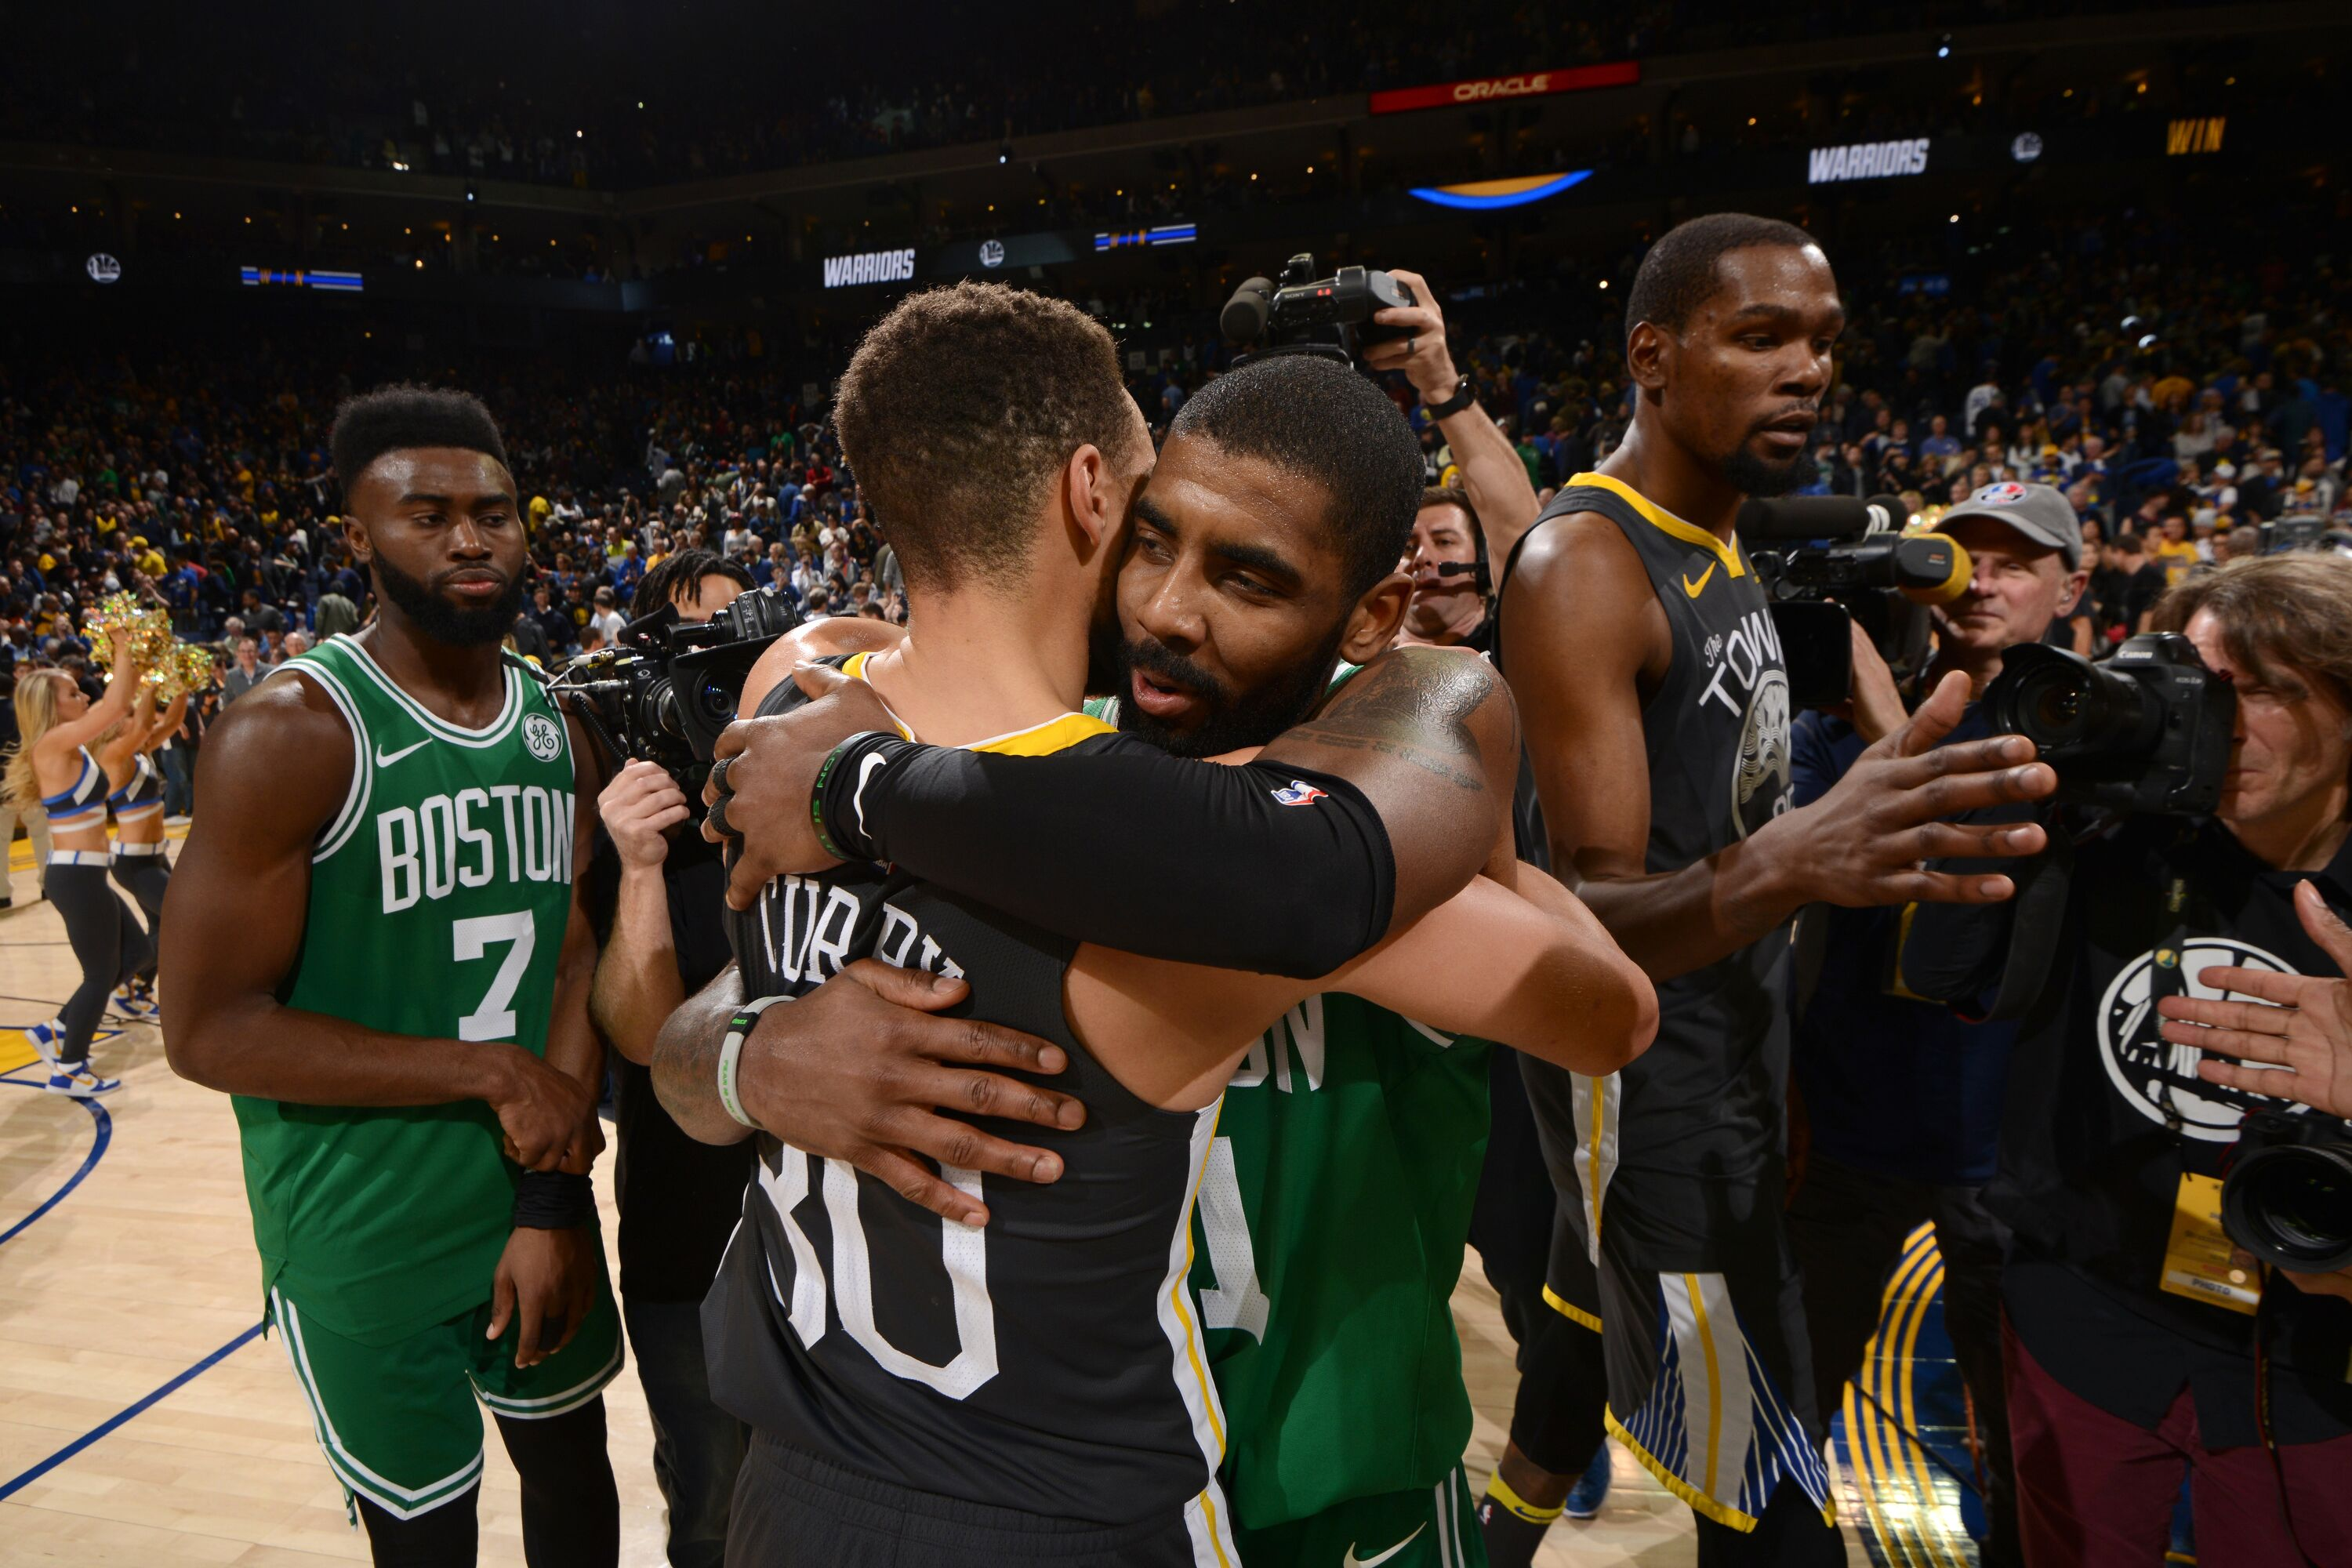 911228030-boston-celtics-v-golden-state-